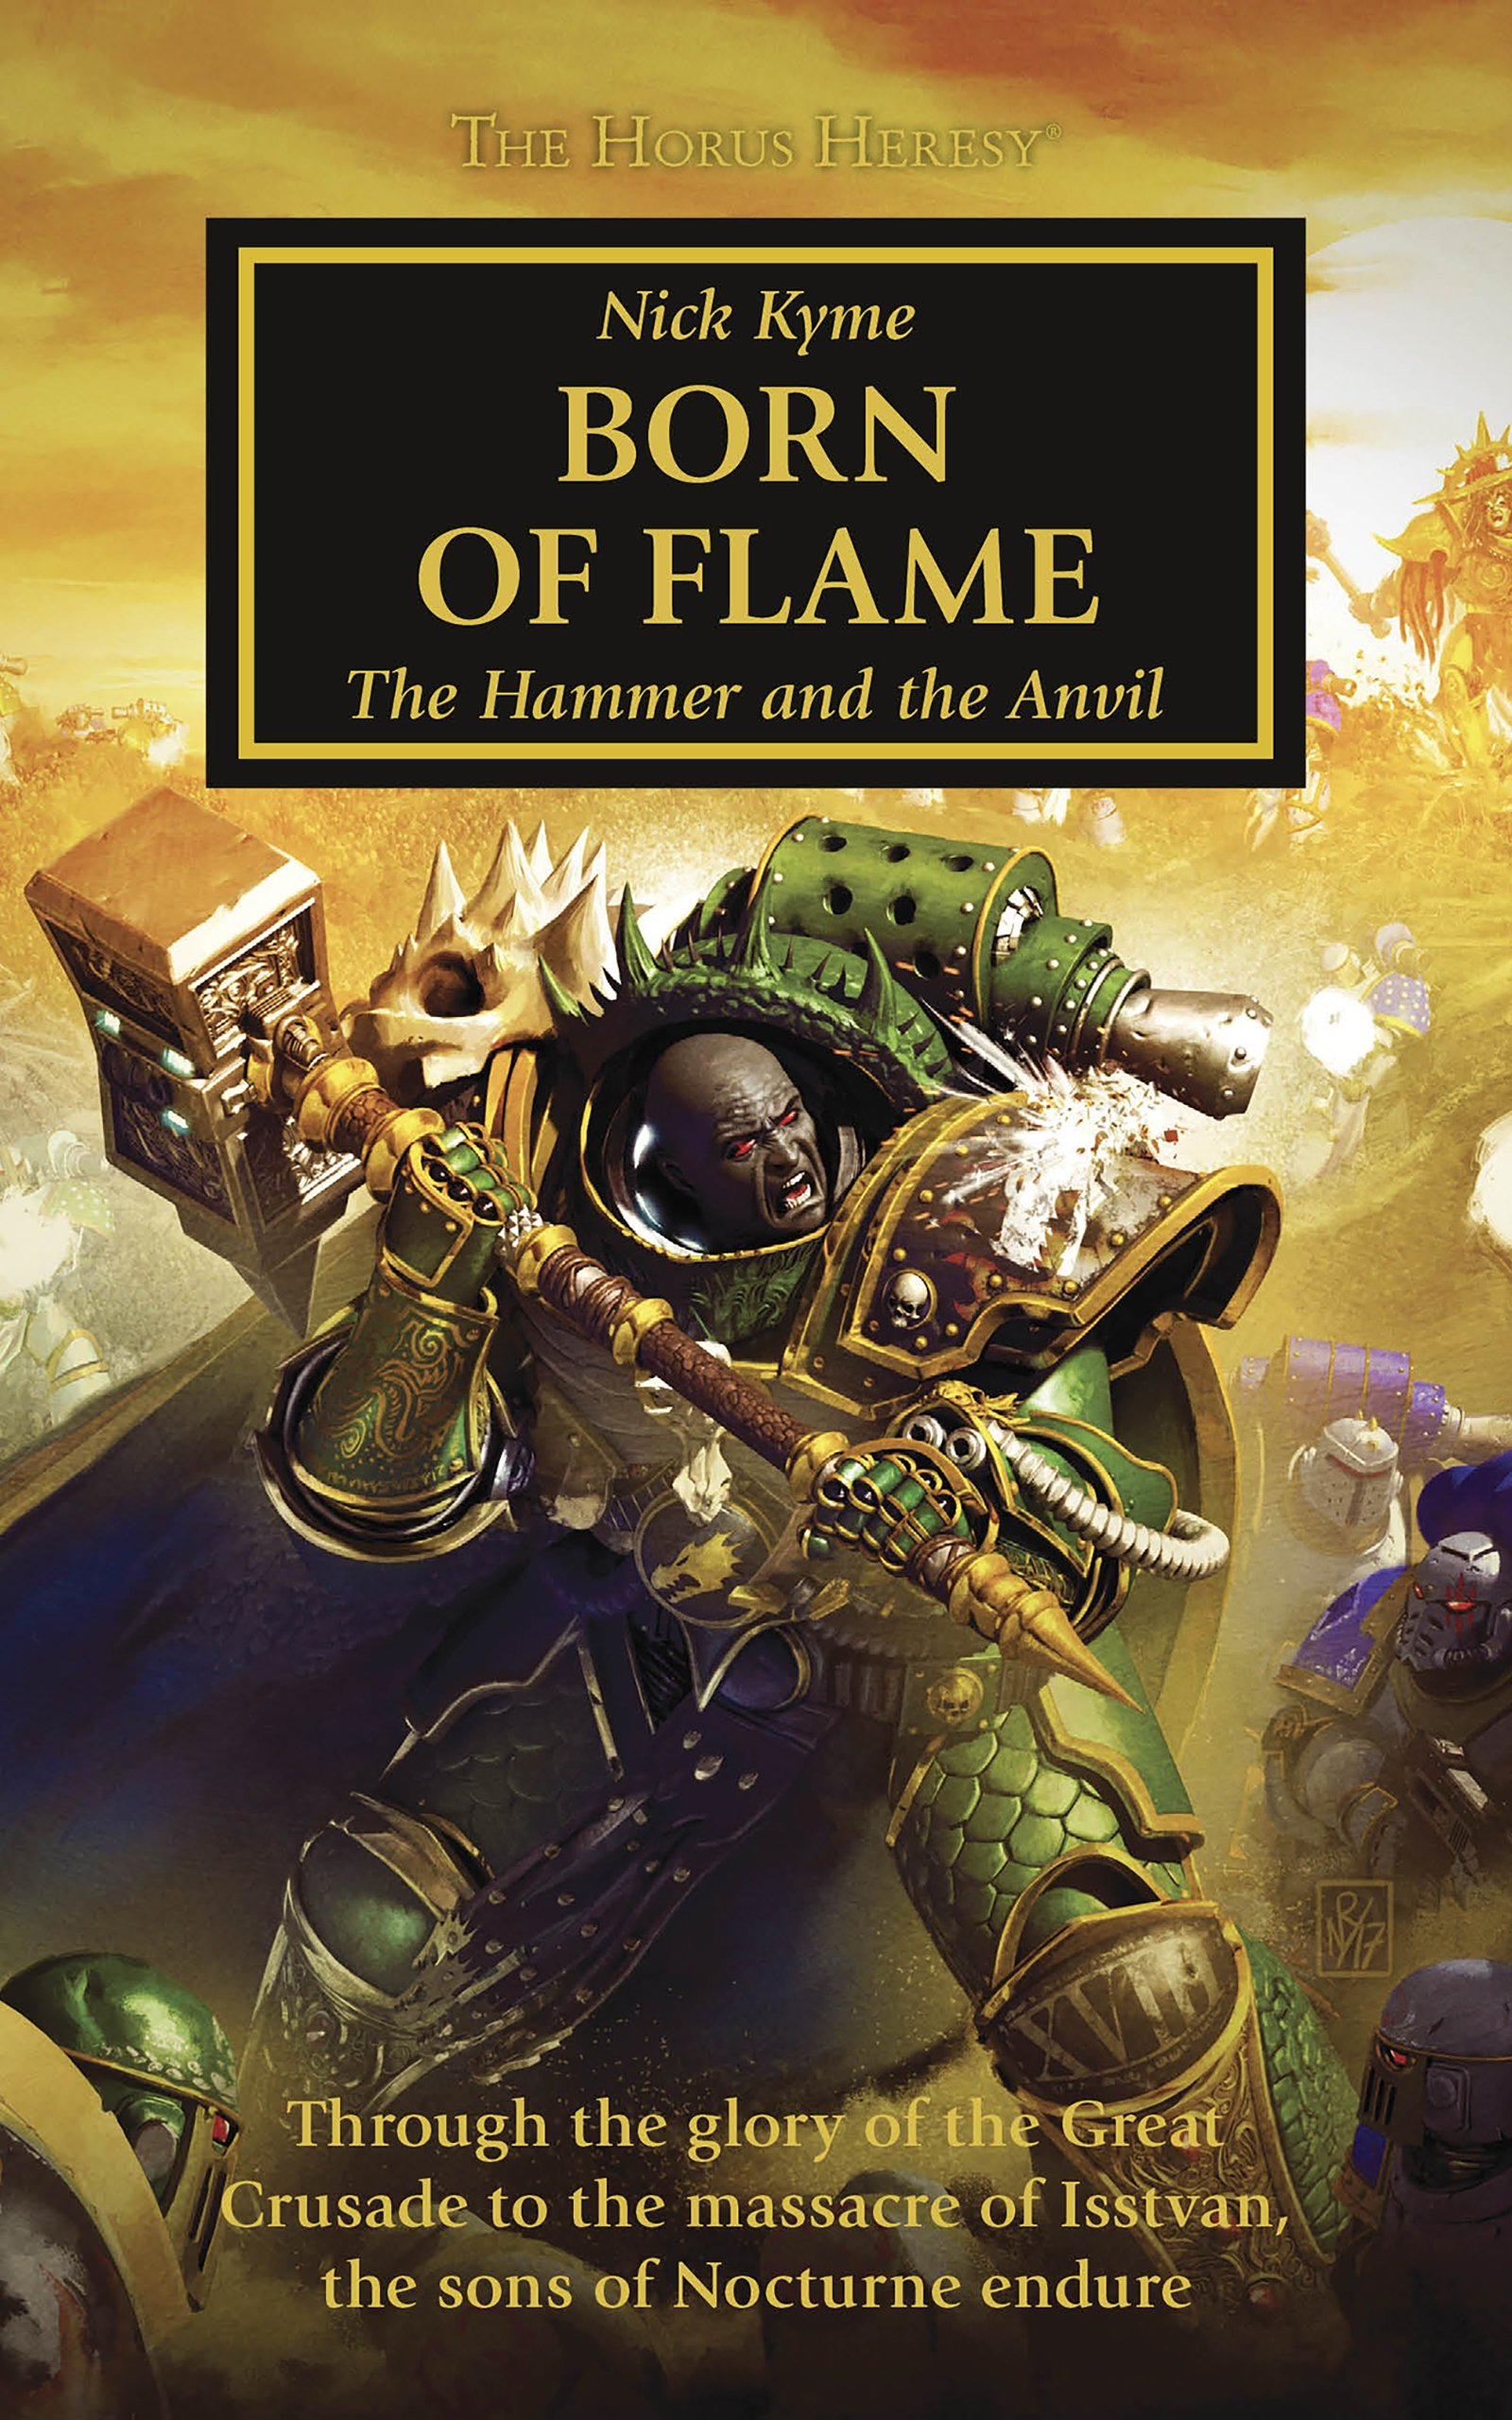 Born of Flame by Nick Kyme